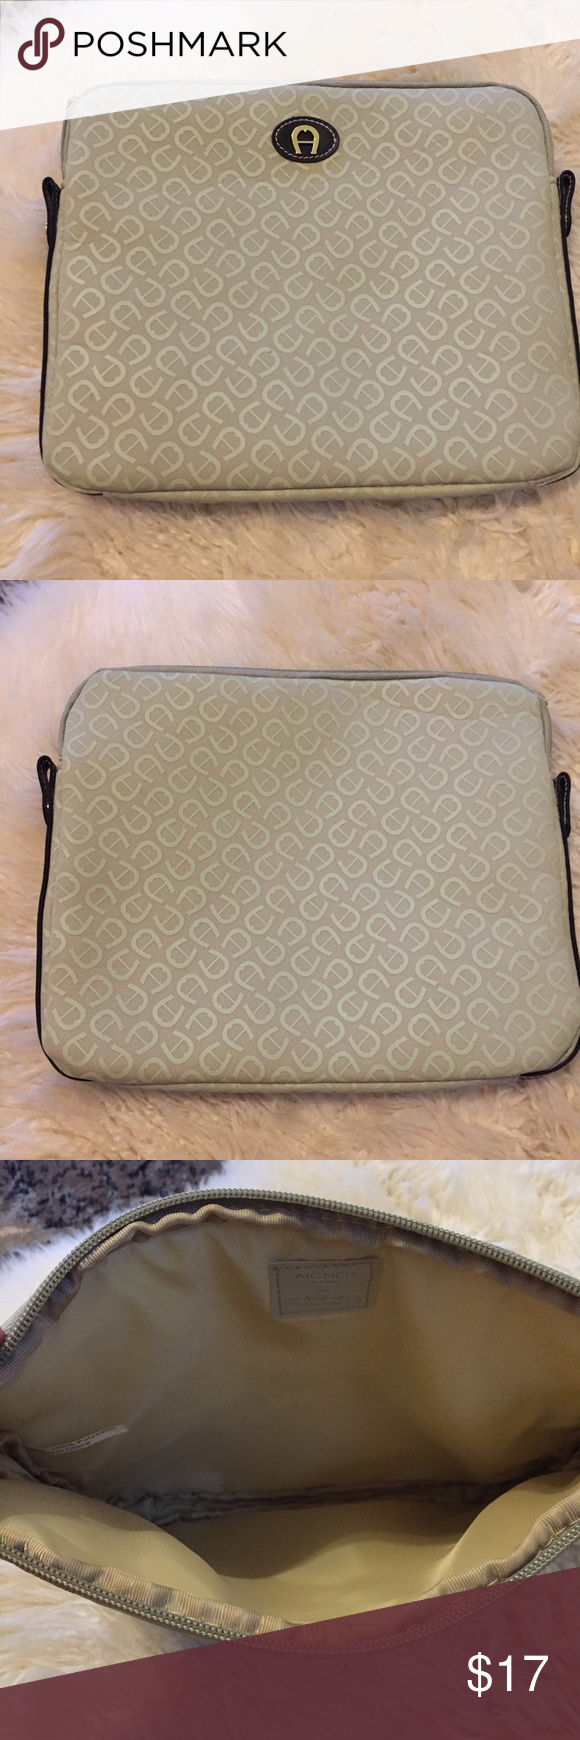 "AIGNER I PAD COVER AIGNER I PAD COVER/PROTECTOR.  Size 11"" by 9"".  Good condition, pet/smoke free home Etienne Aigner Accessories Laptop Cases"